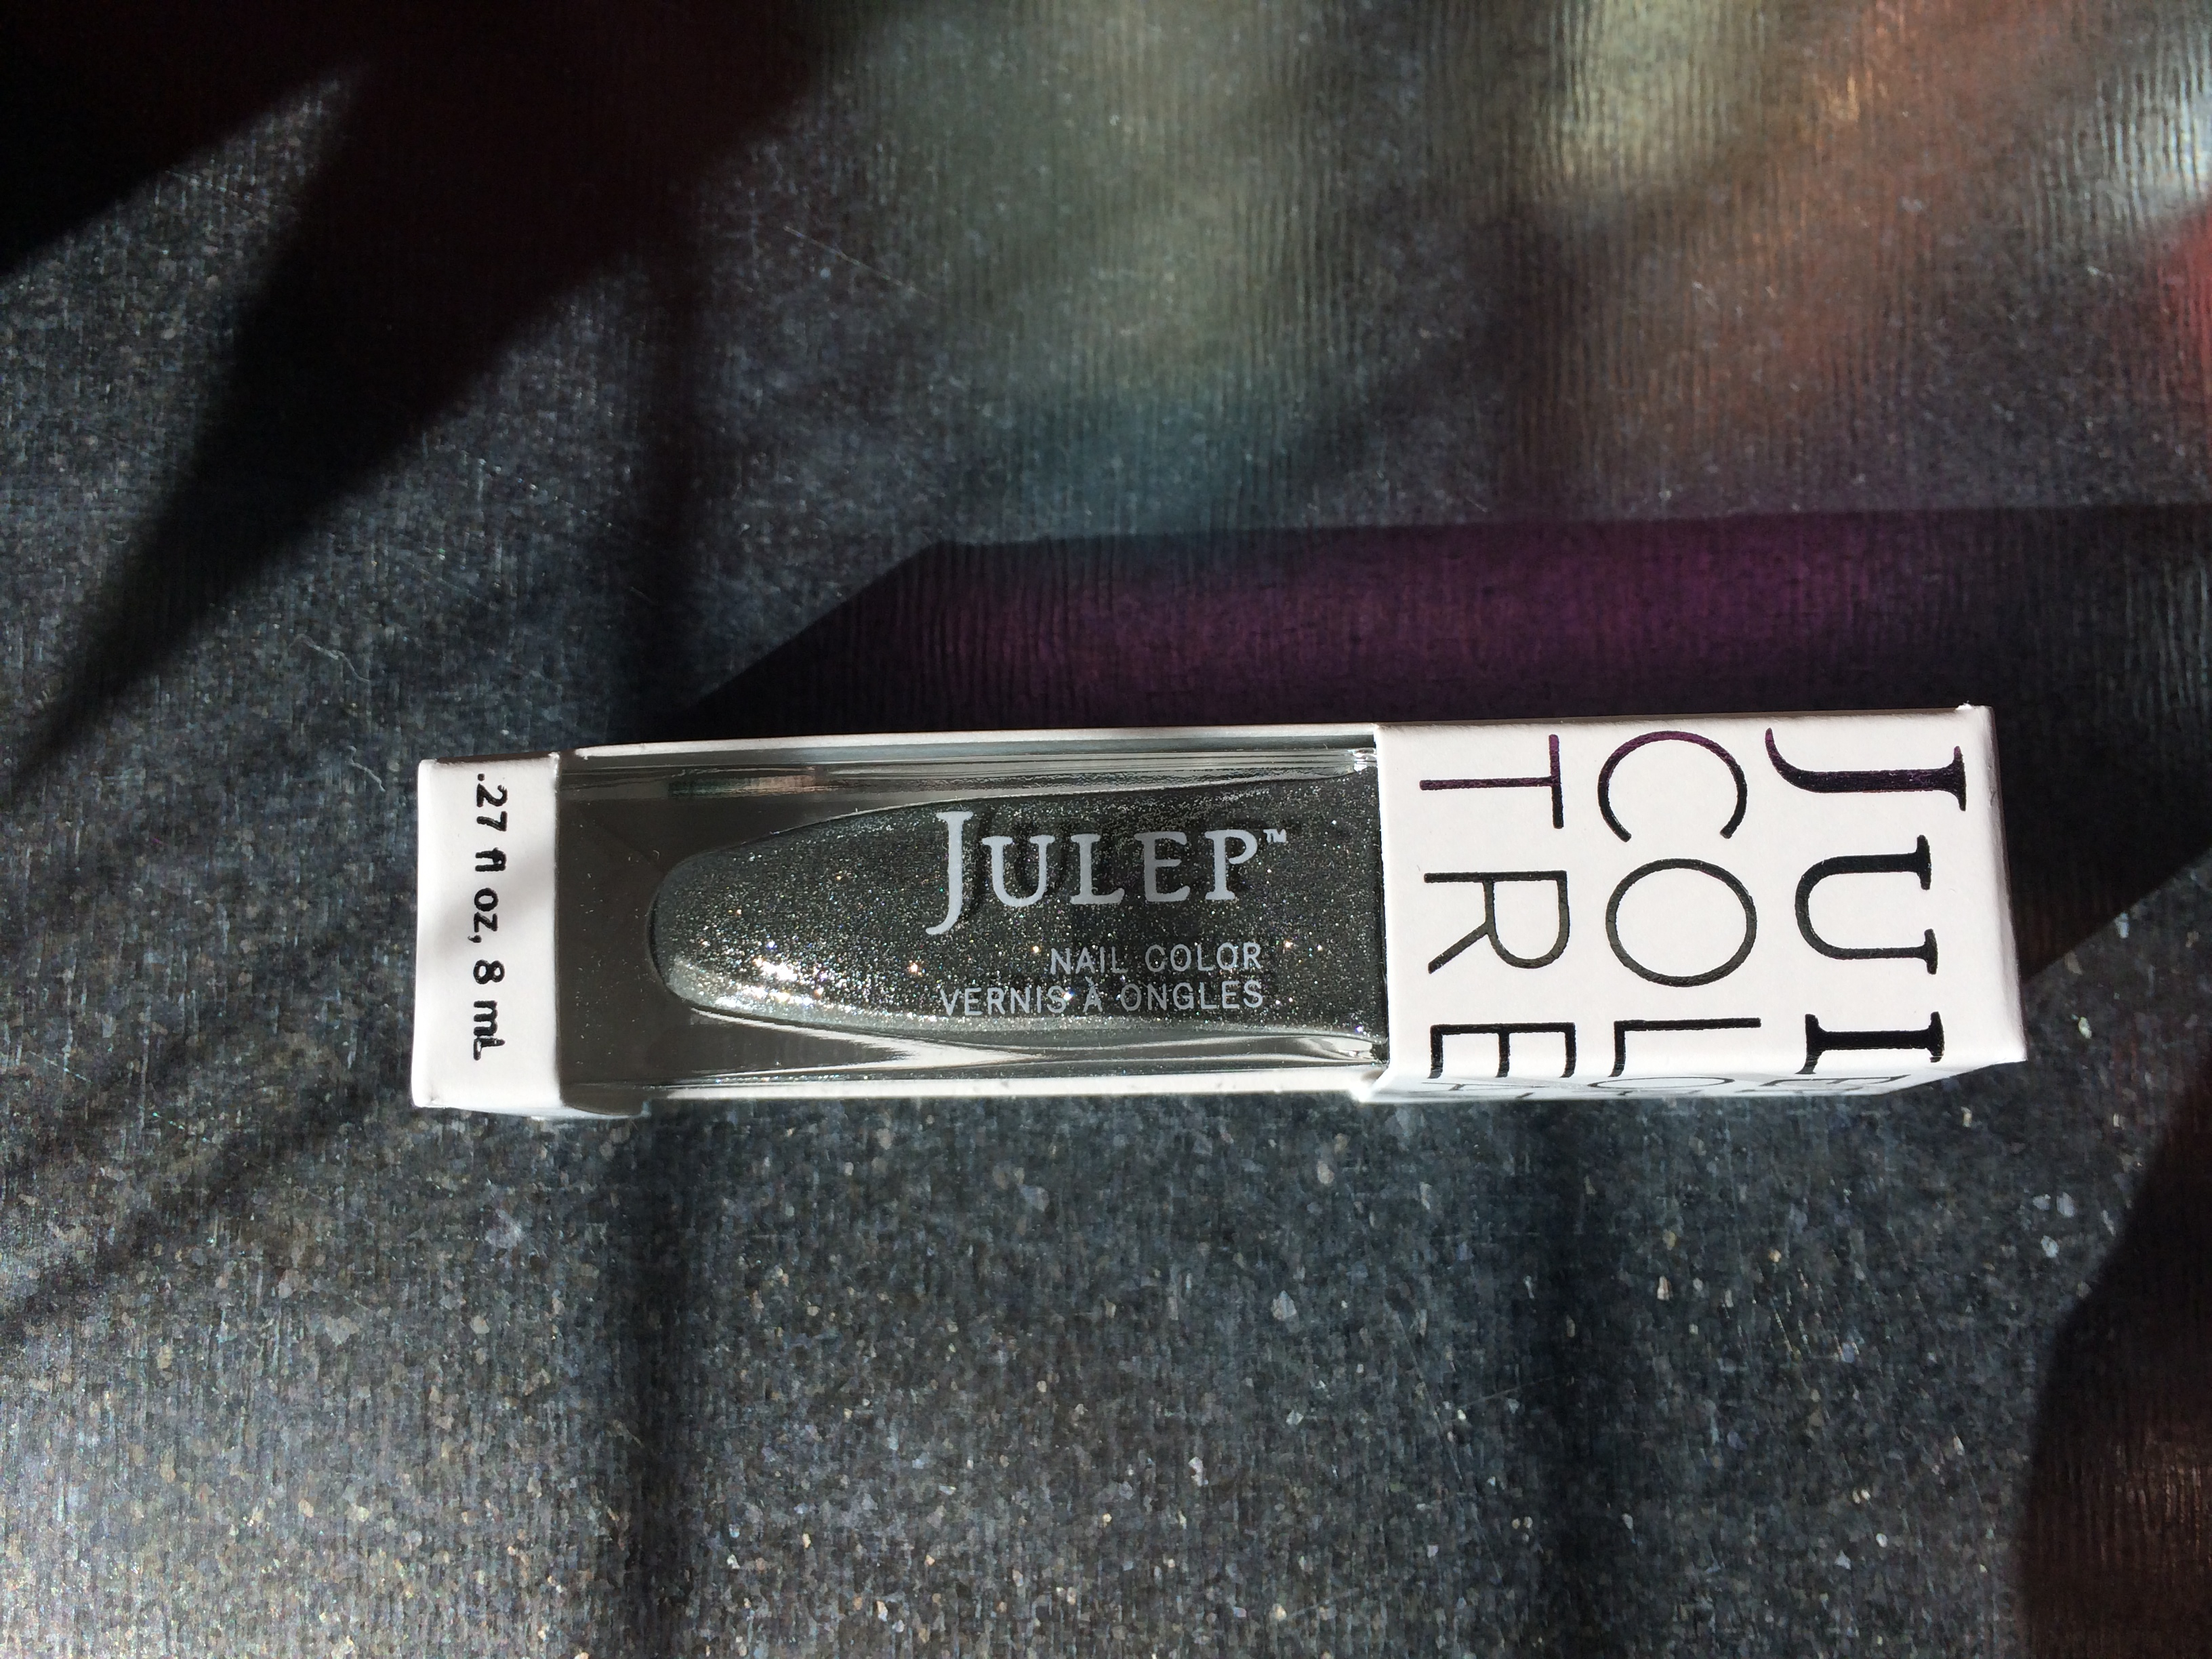 Julep coupon code